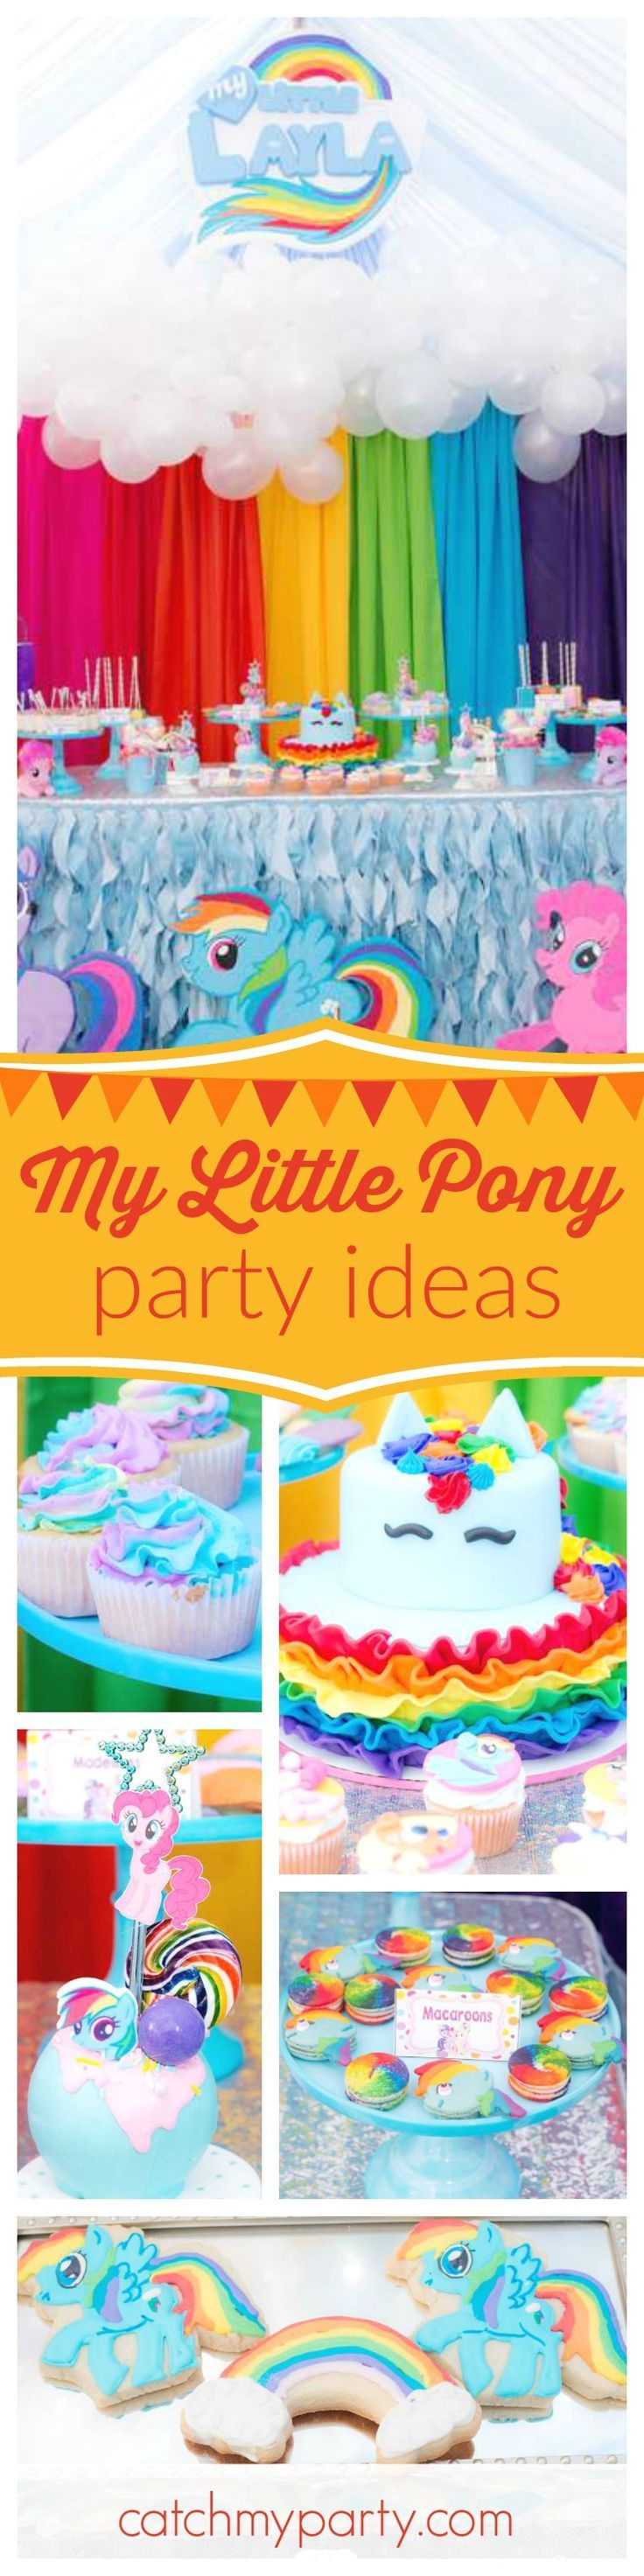 Don't miss this colorful My Little Pony birthday party! The Rainbow Dash birthday cake is adorable!! See more party ideas and share yours at http://CatchMyParty.com